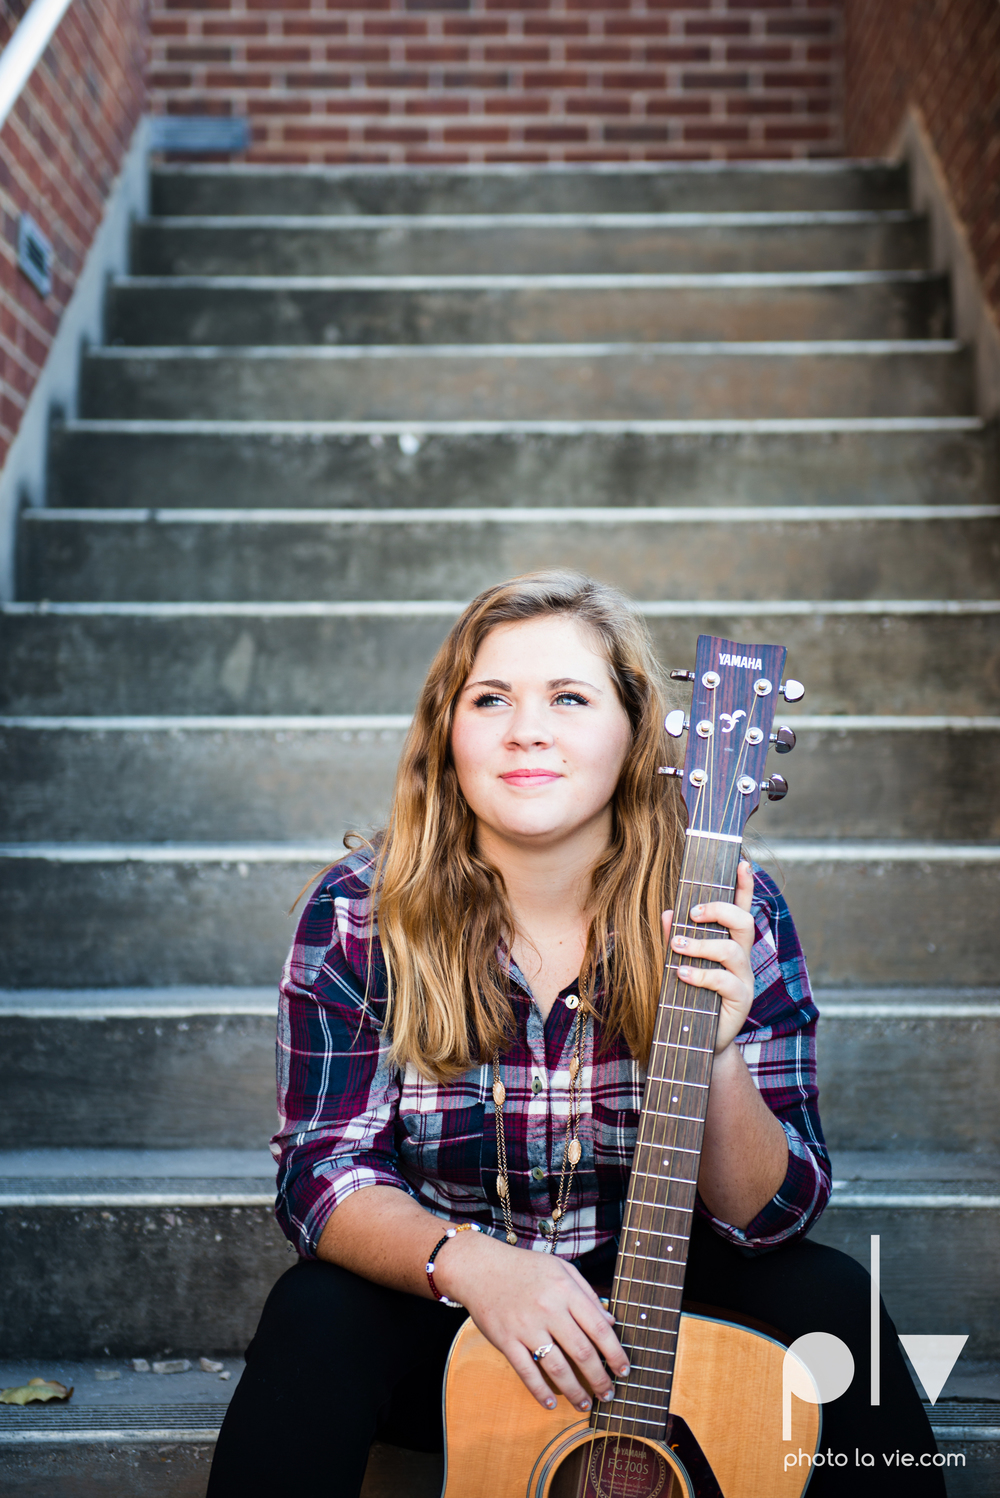 Abi senior session photo DBU dallas dfw texas girl high school campus fall winter plaid dress purple guitar Sarah Whittaker Photo La Vie-7.JPG